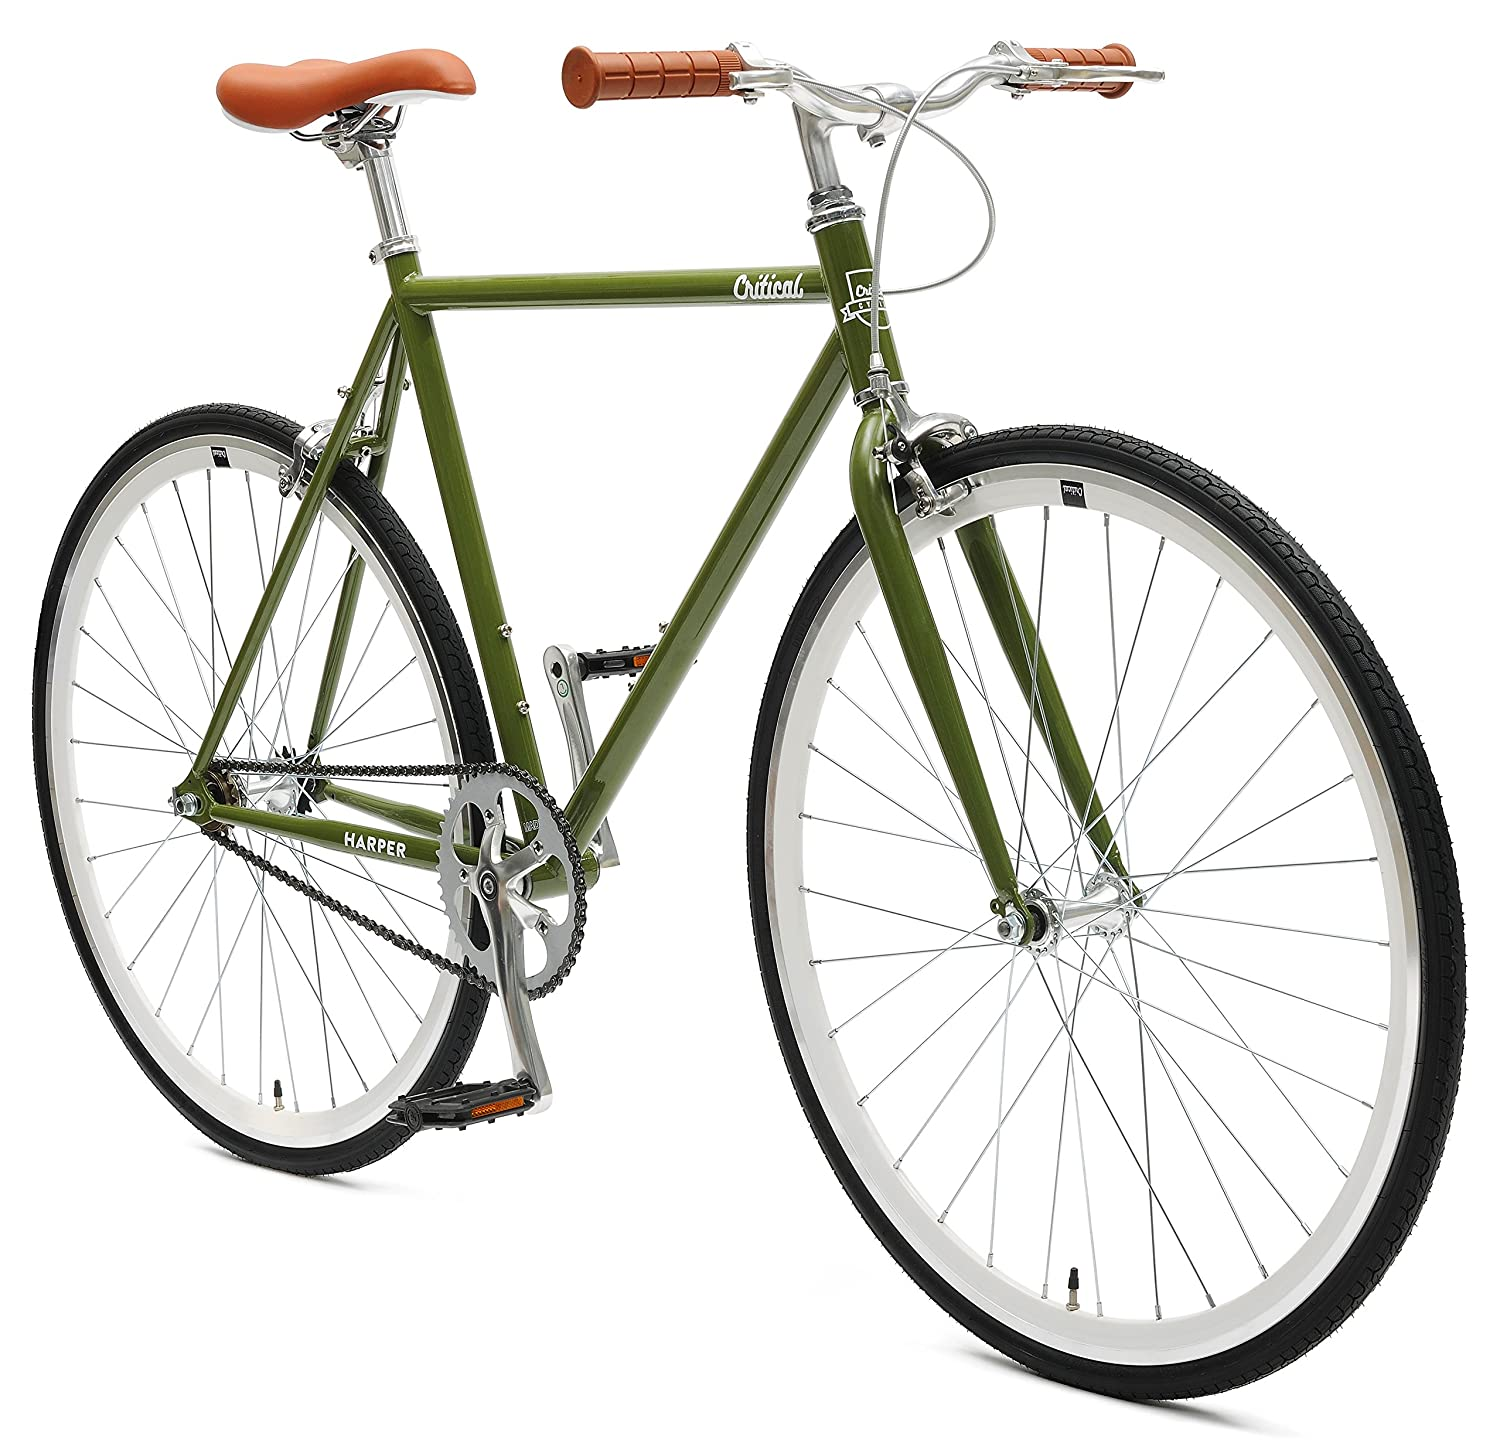 Retrospec Critical fixed gear bike